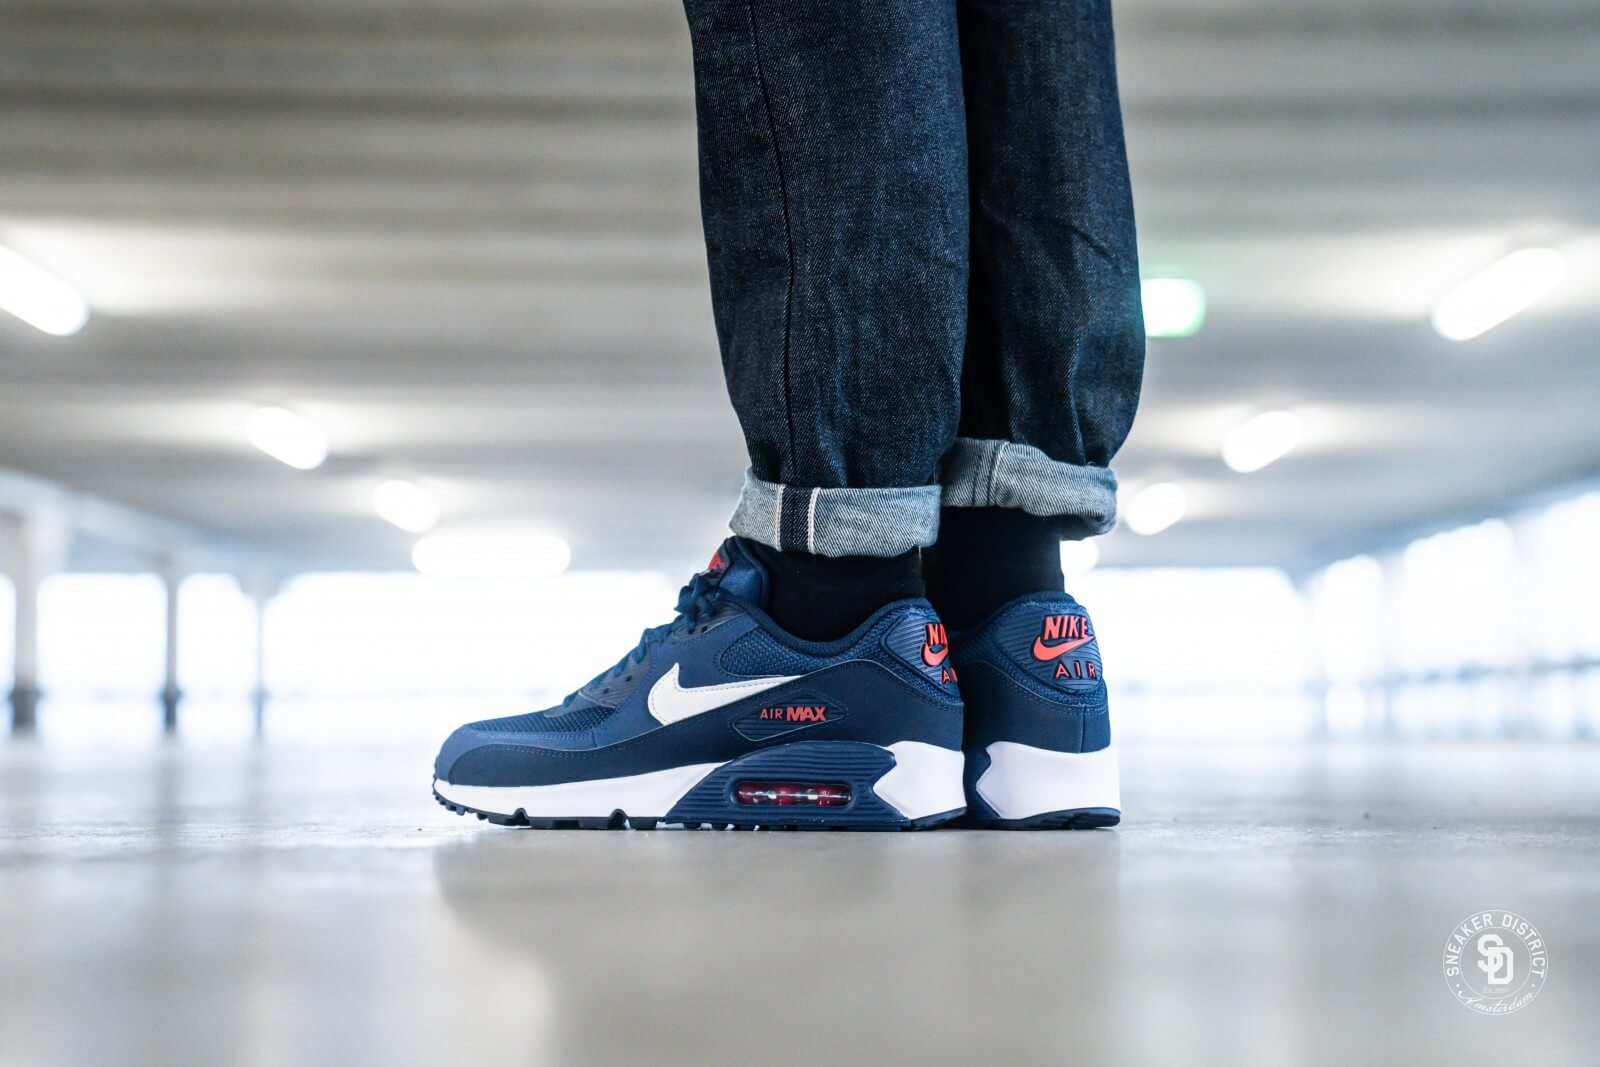 Insustituible Resonar Analítico  Nike Air Max 90 Essential Midnight Navy/White-University Red - AJ1285-403